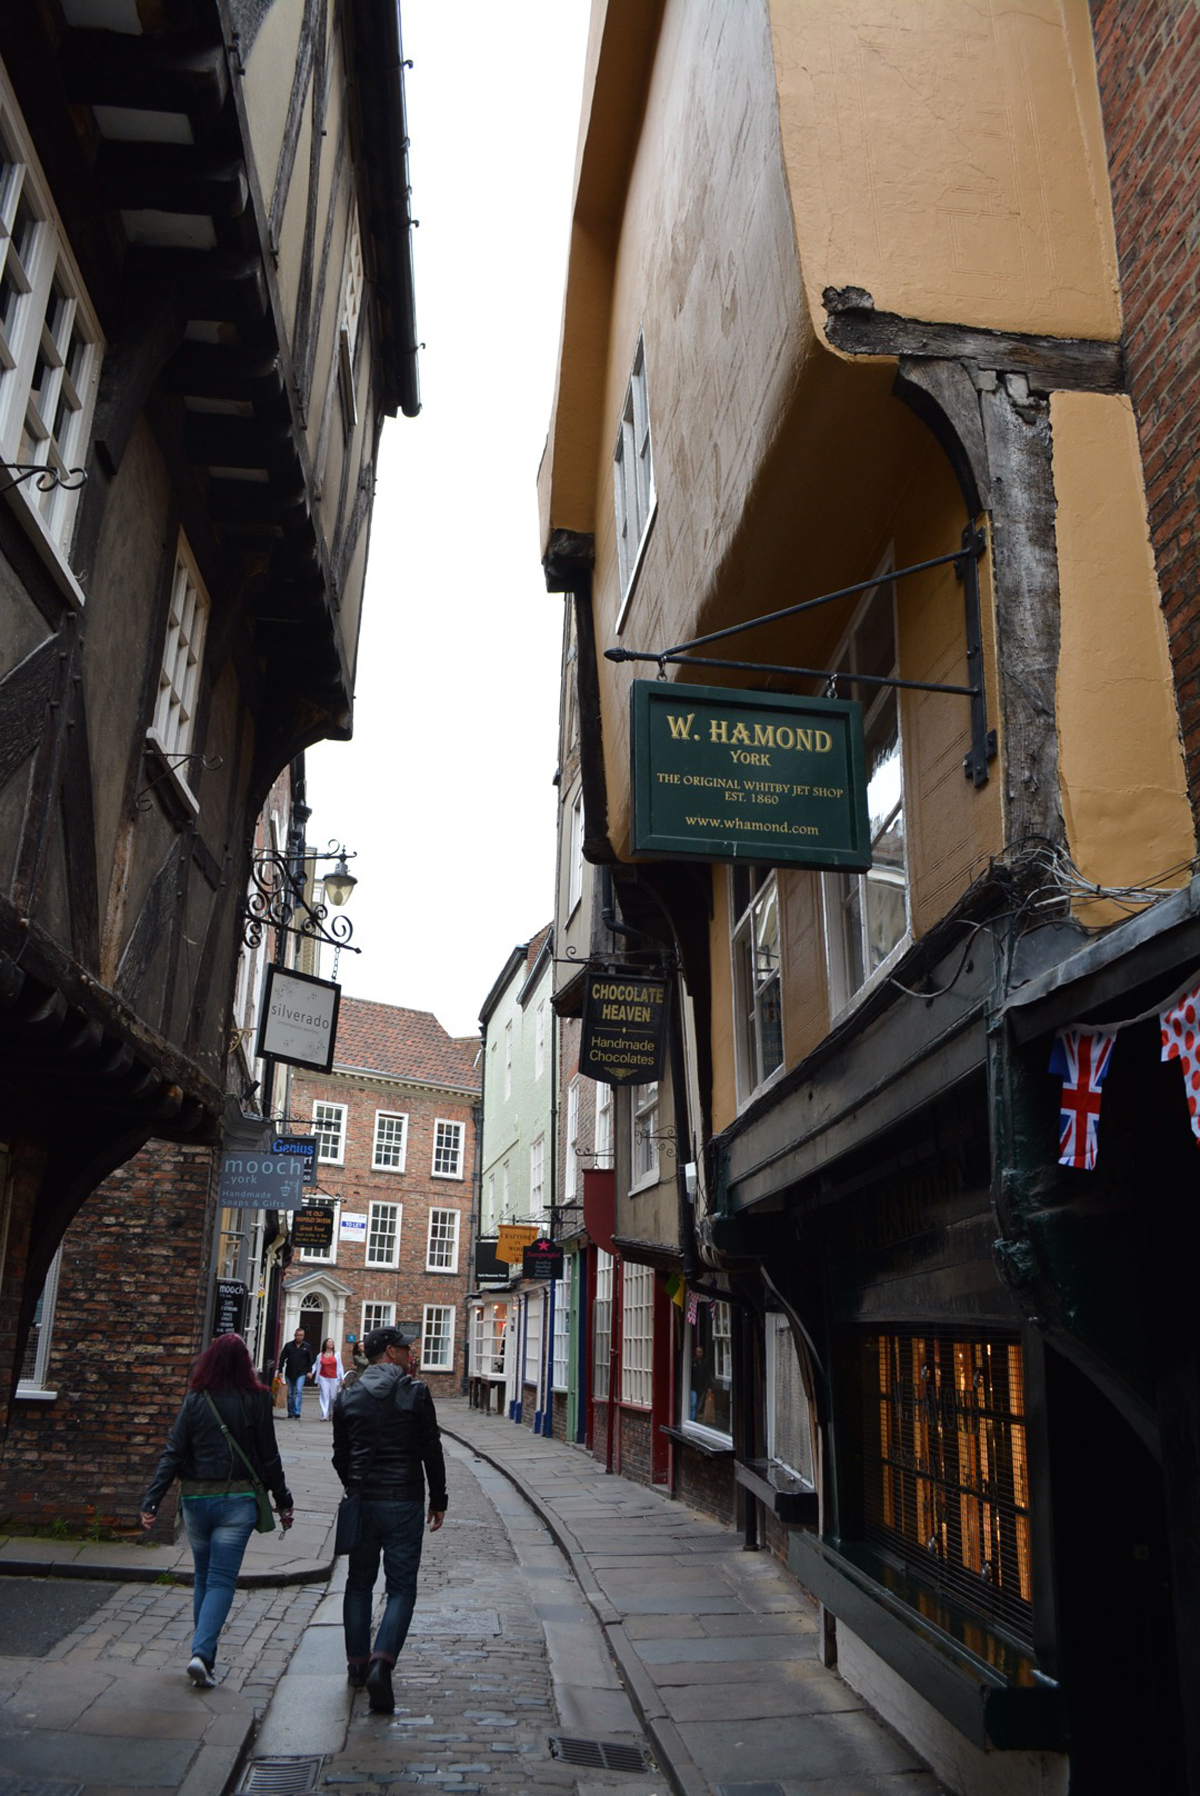 Shops in Old World Shambles of York